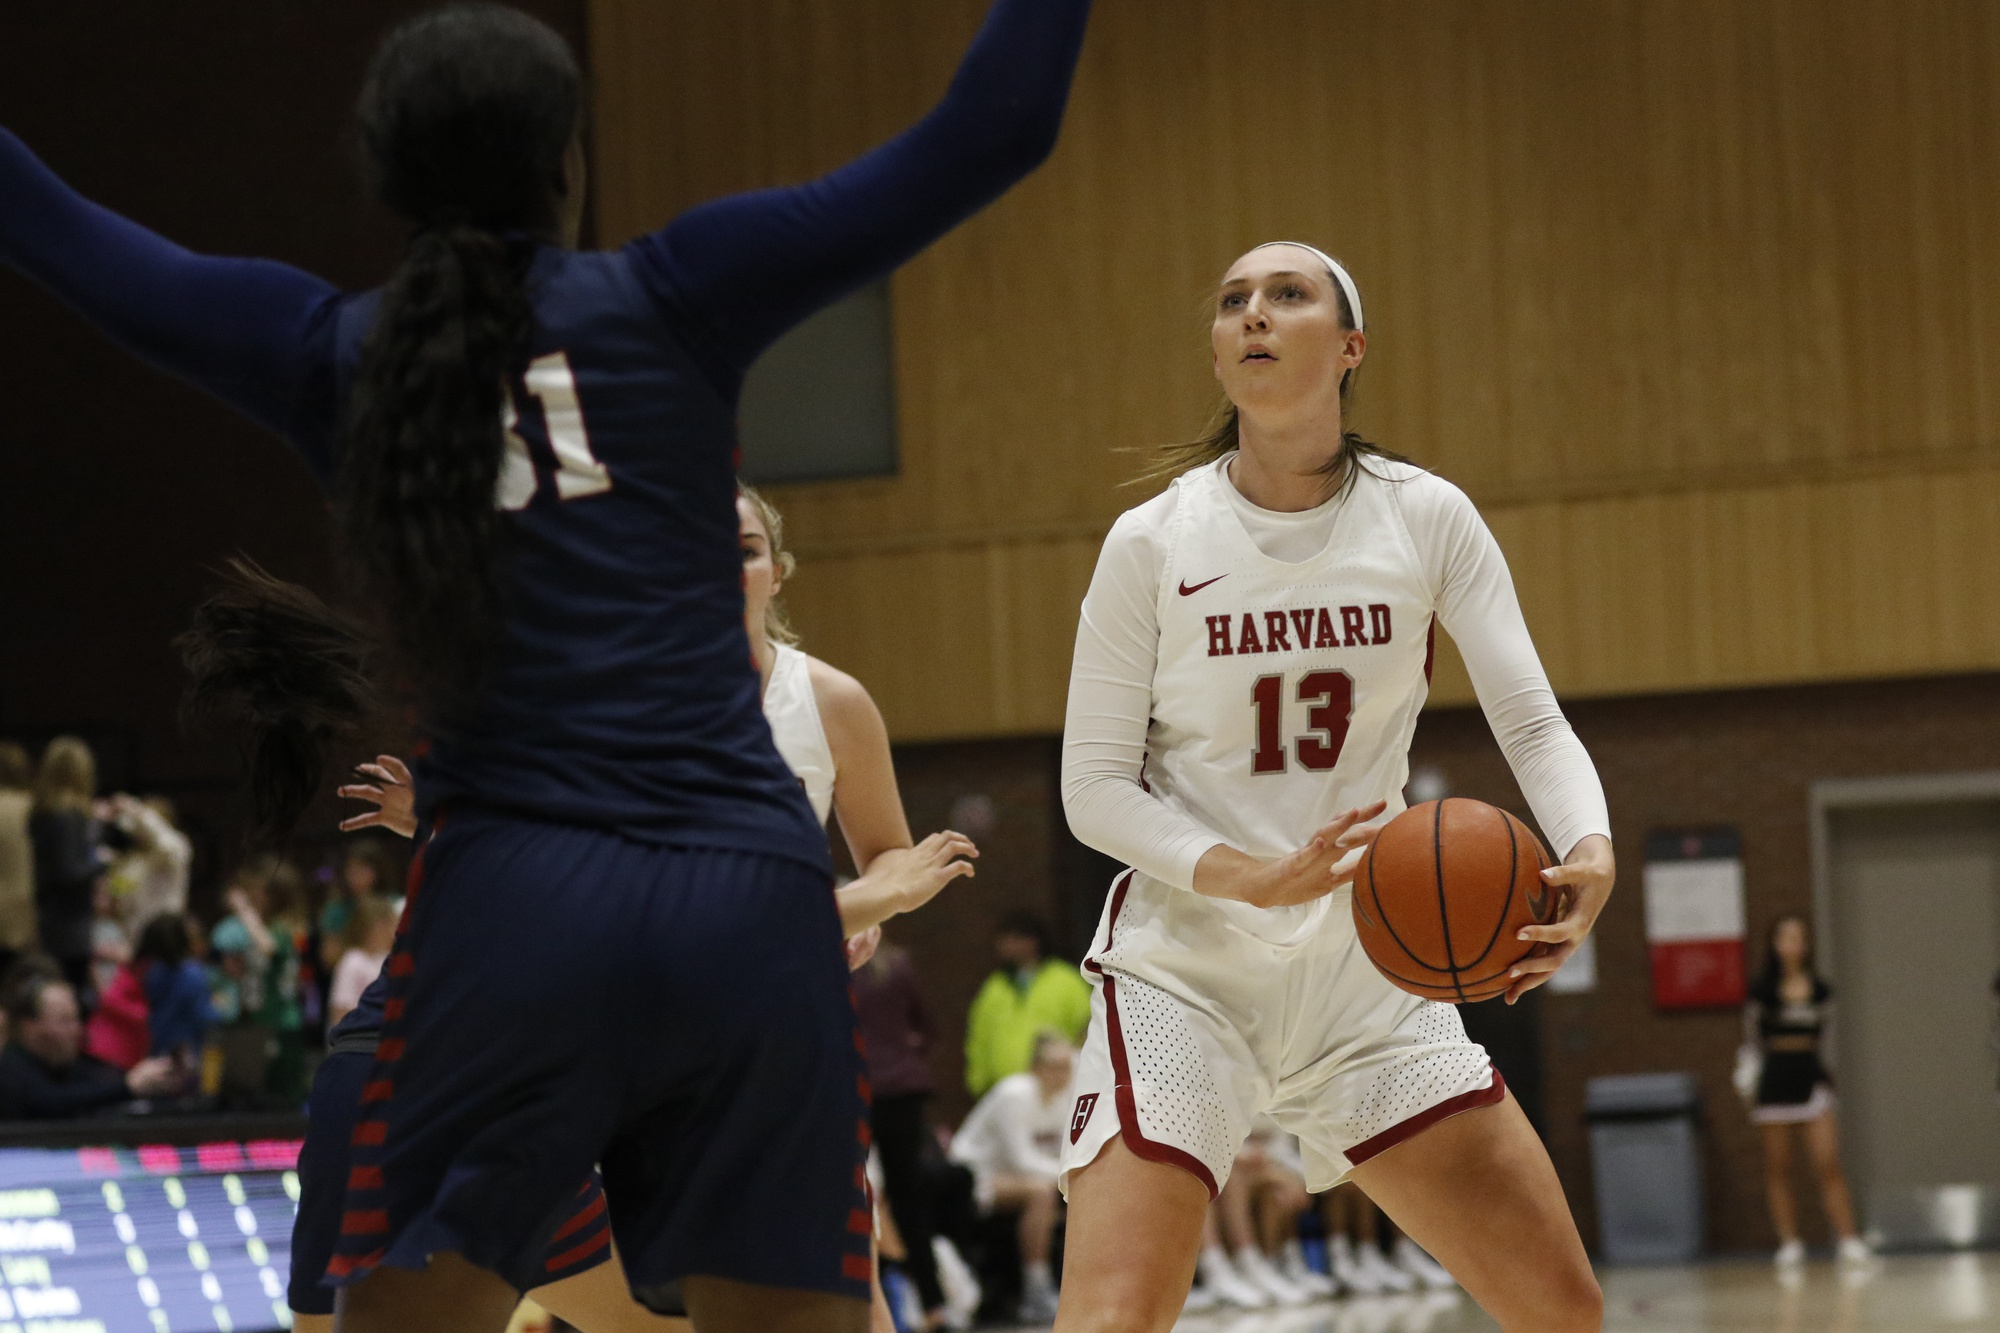 Harvard senior Jeannie Boehm co-led the Crimson in scoring with 10 points during a 60-46 loss to Princeton on Saturday.